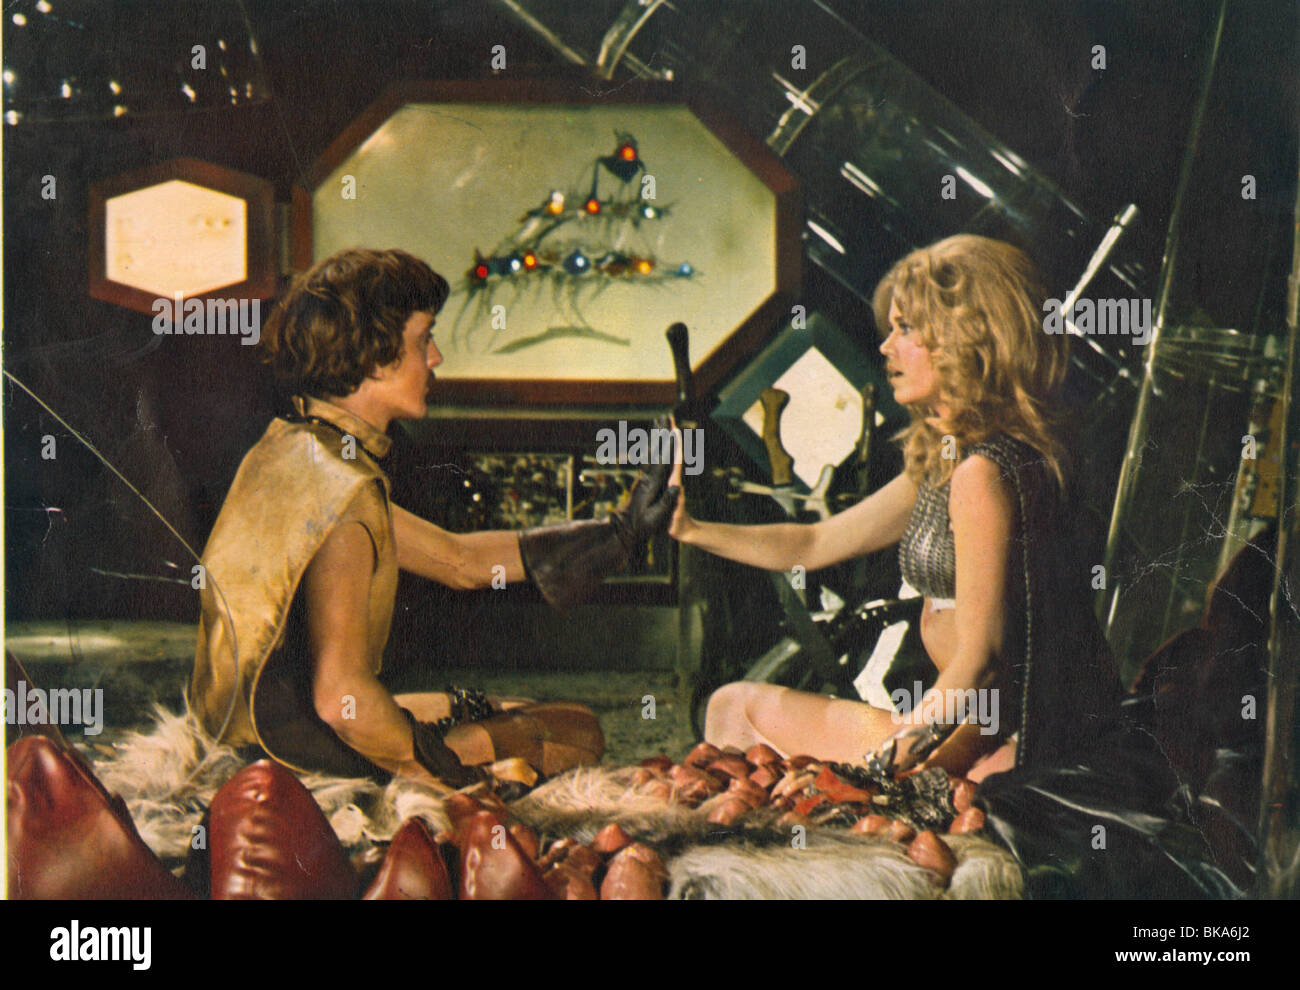 BARBARELLA (1967) DAVID HEMMINGS, DILDANO, JANE FONDA, BARBARELLA BRB 006FOH - Stock Image